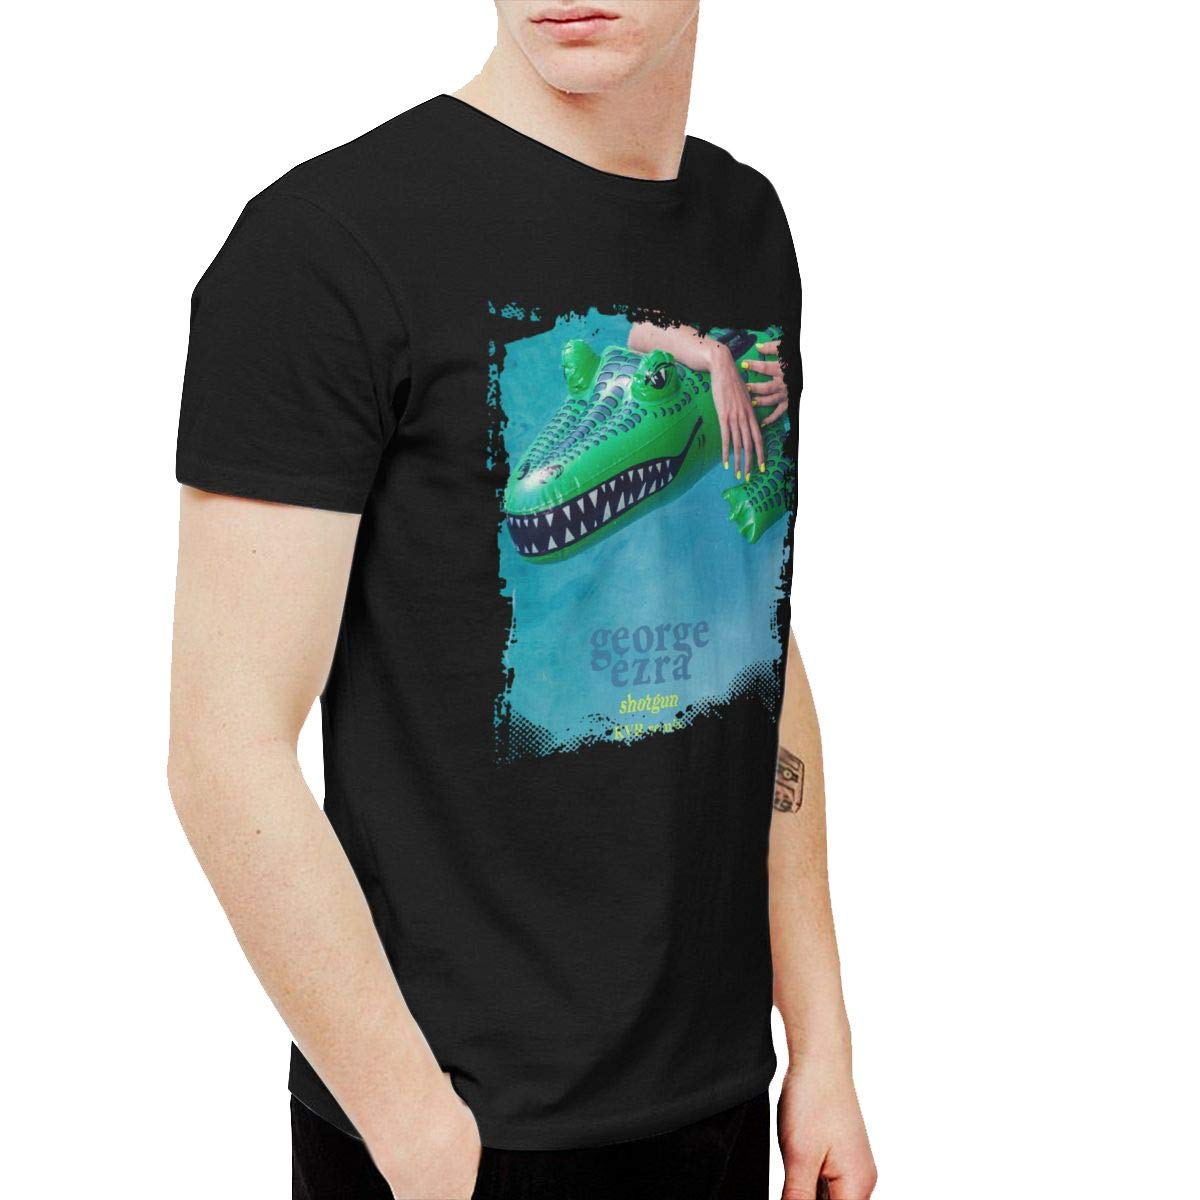 Kangtians SIPDGXKKZA Mens George Ezra Shotgun Leisure Walk Black Shirt Short Sleeve